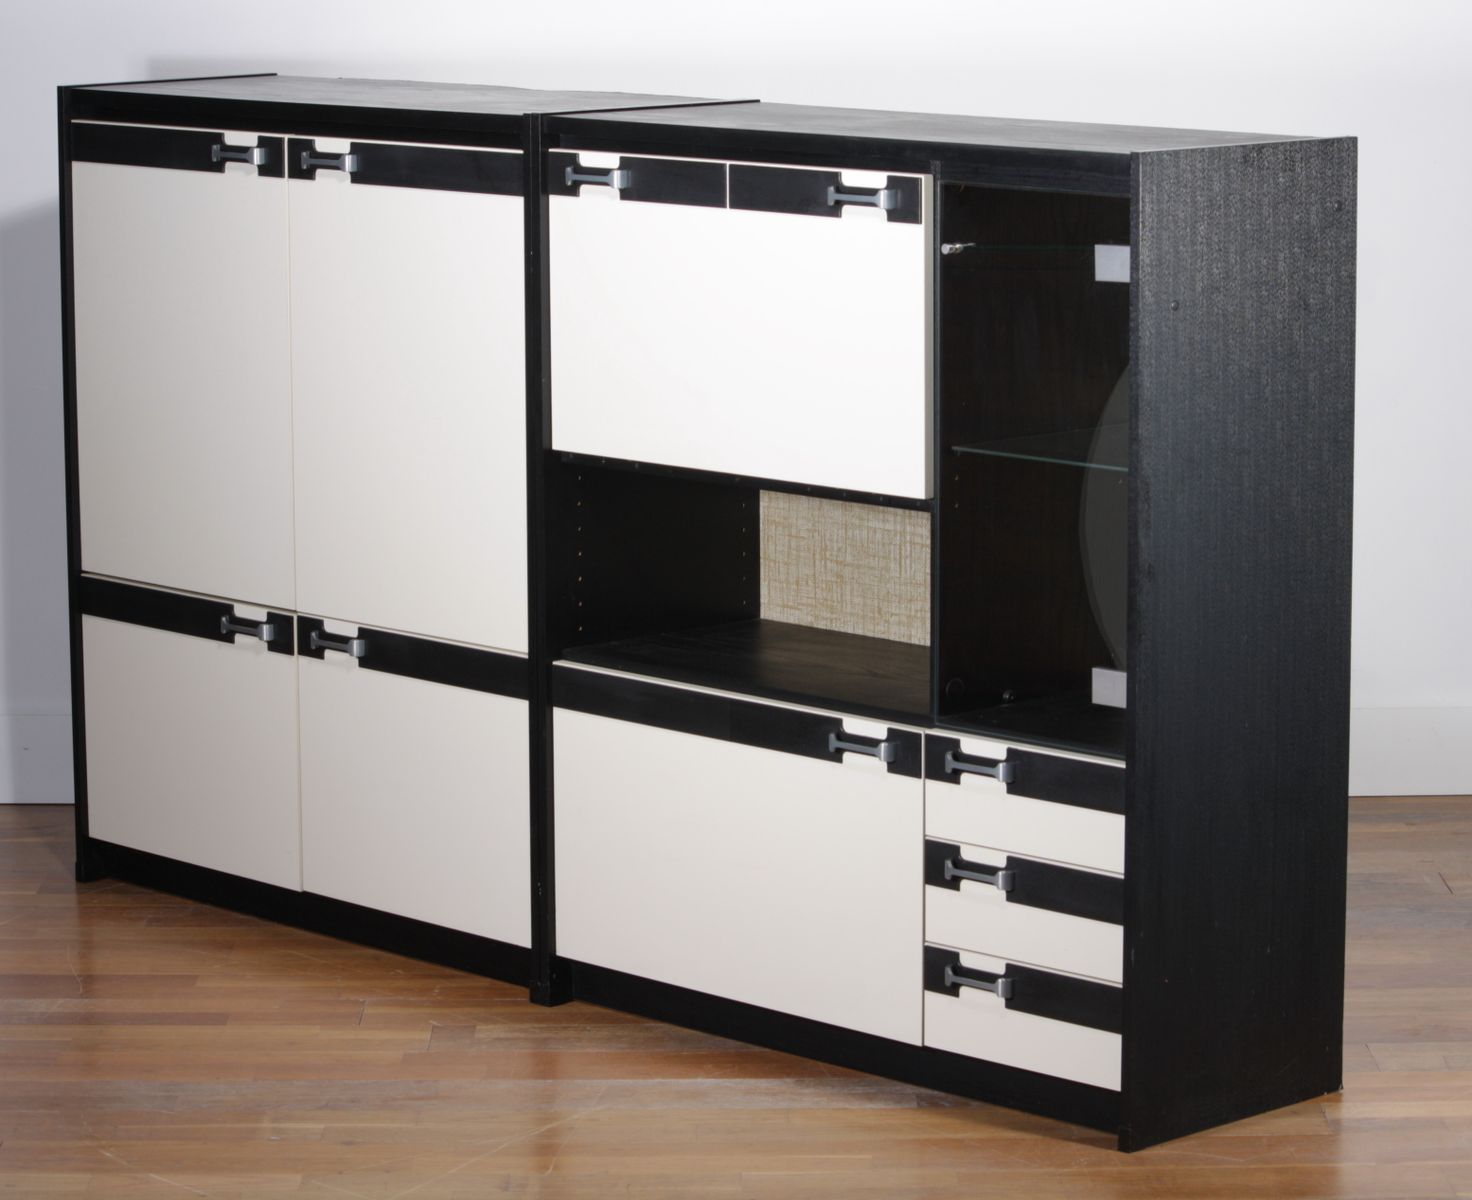 danish wall unit from schieder m bel 1970s for sale at pamono. Black Bedroom Furniture Sets. Home Design Ideas